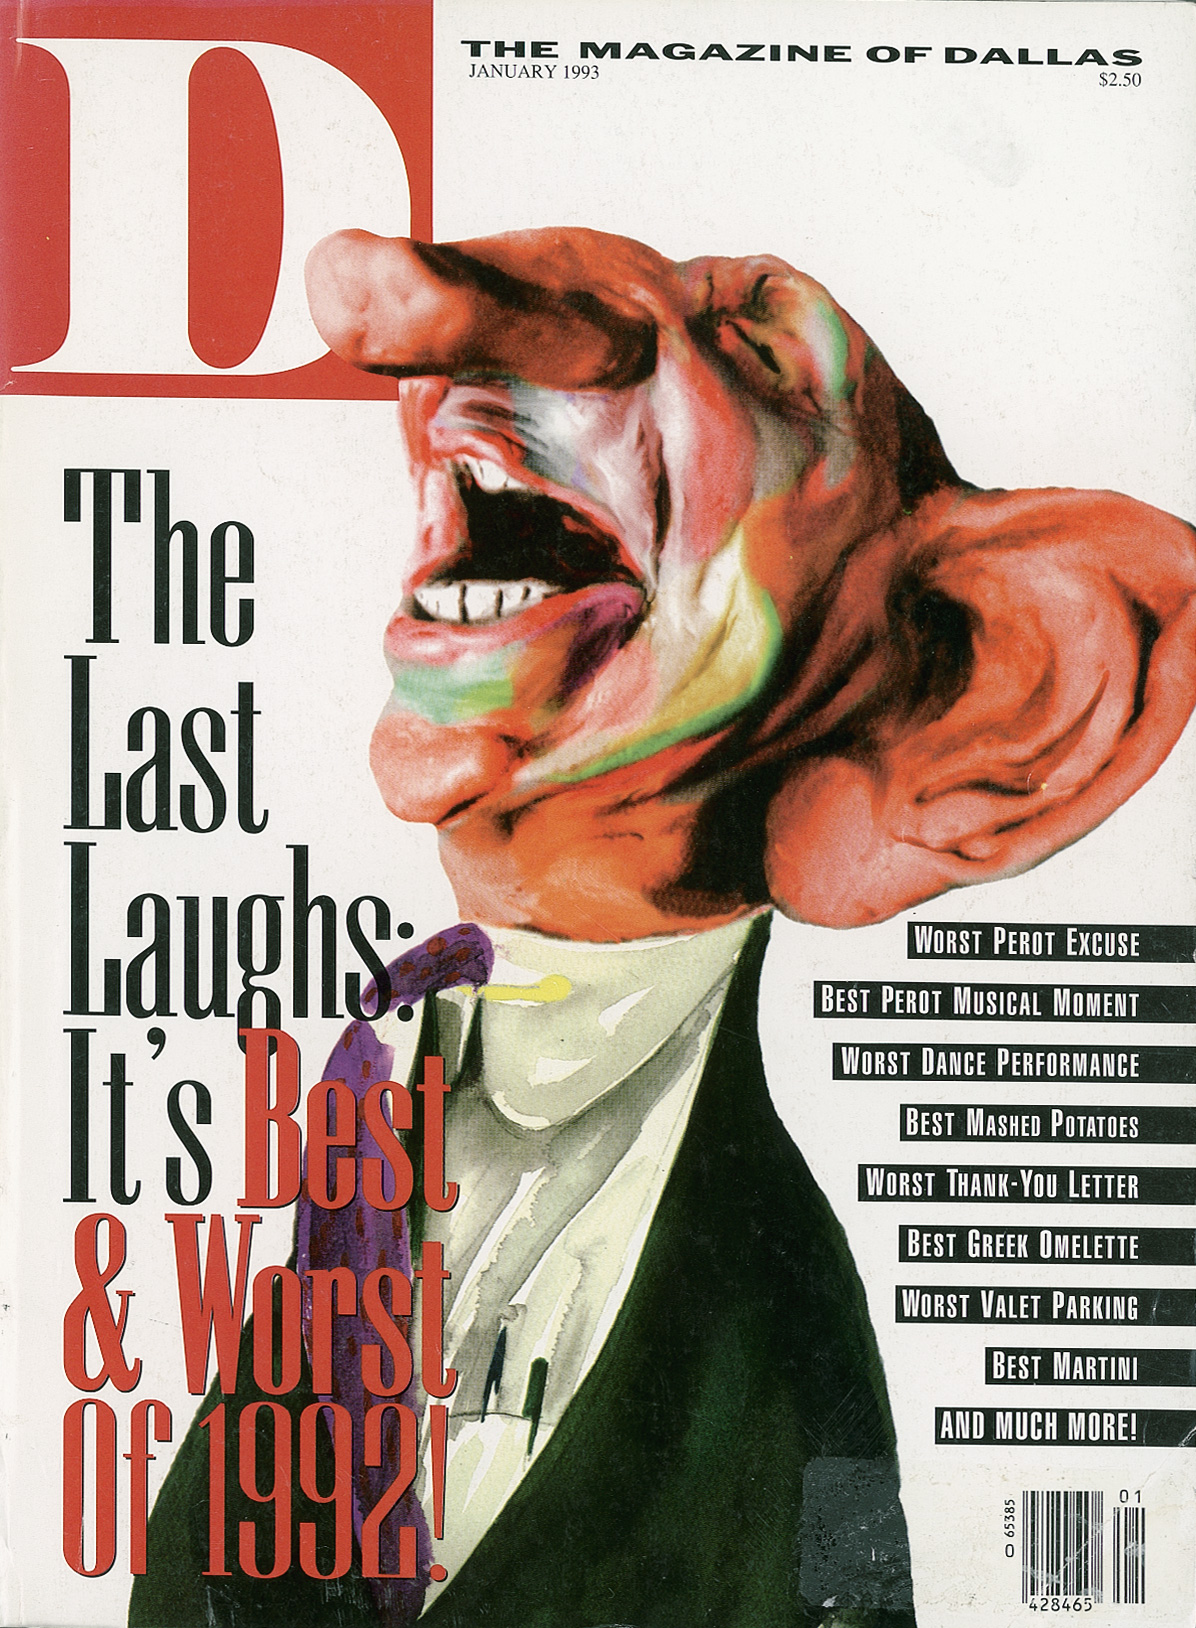 January 1993 cover